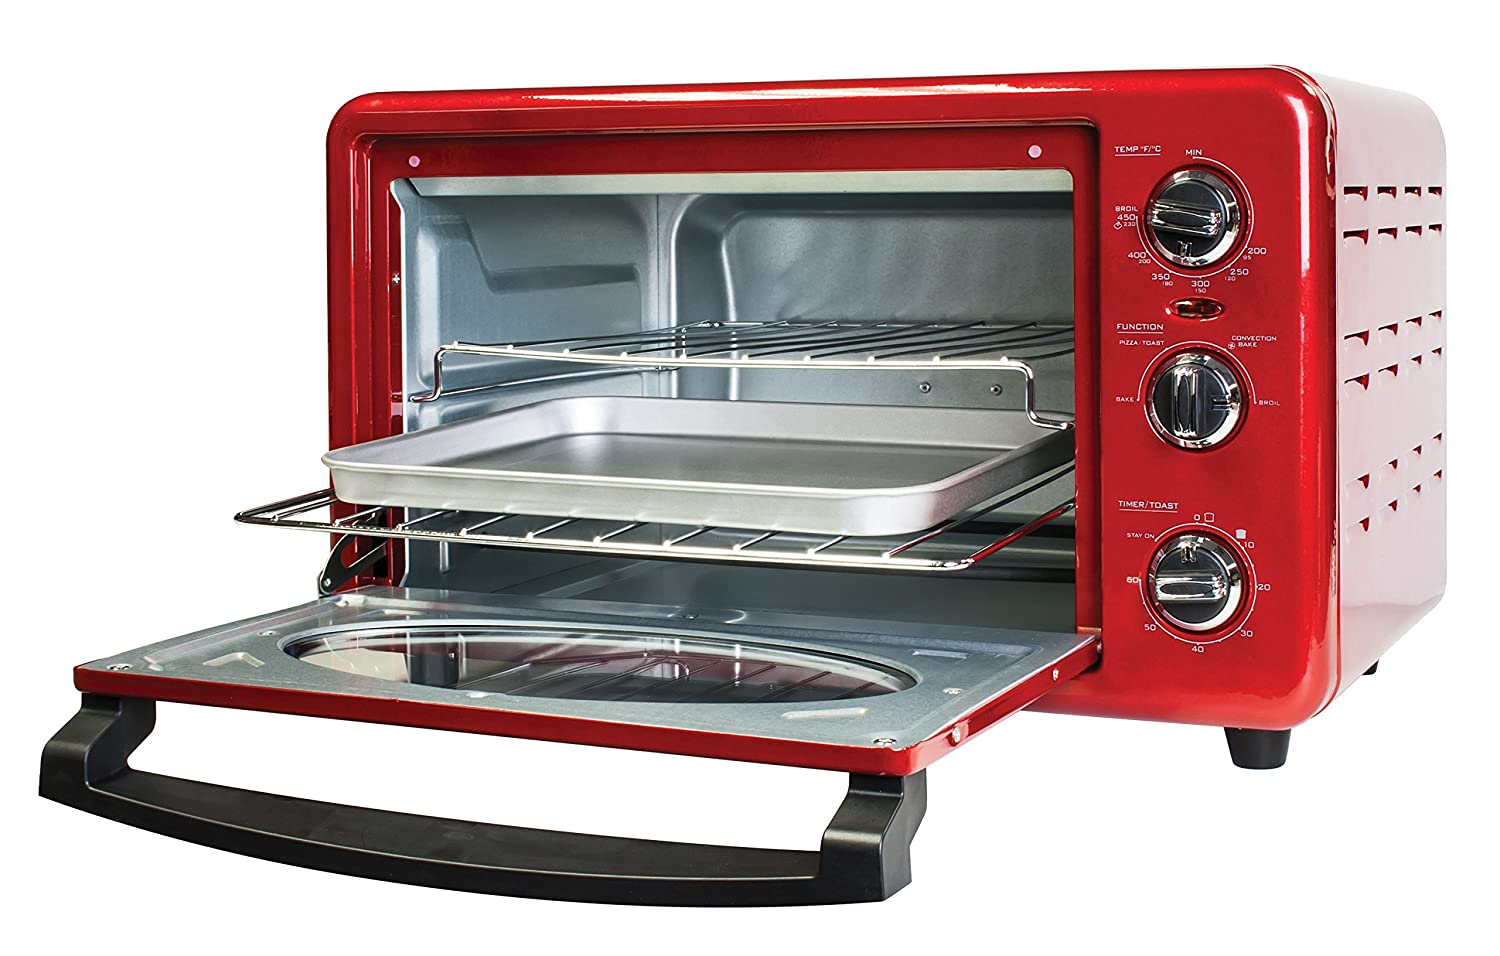 Best Countertop Ovens For Baking Convection Toaster Oven Counter Top Cook Roast Bake Broil